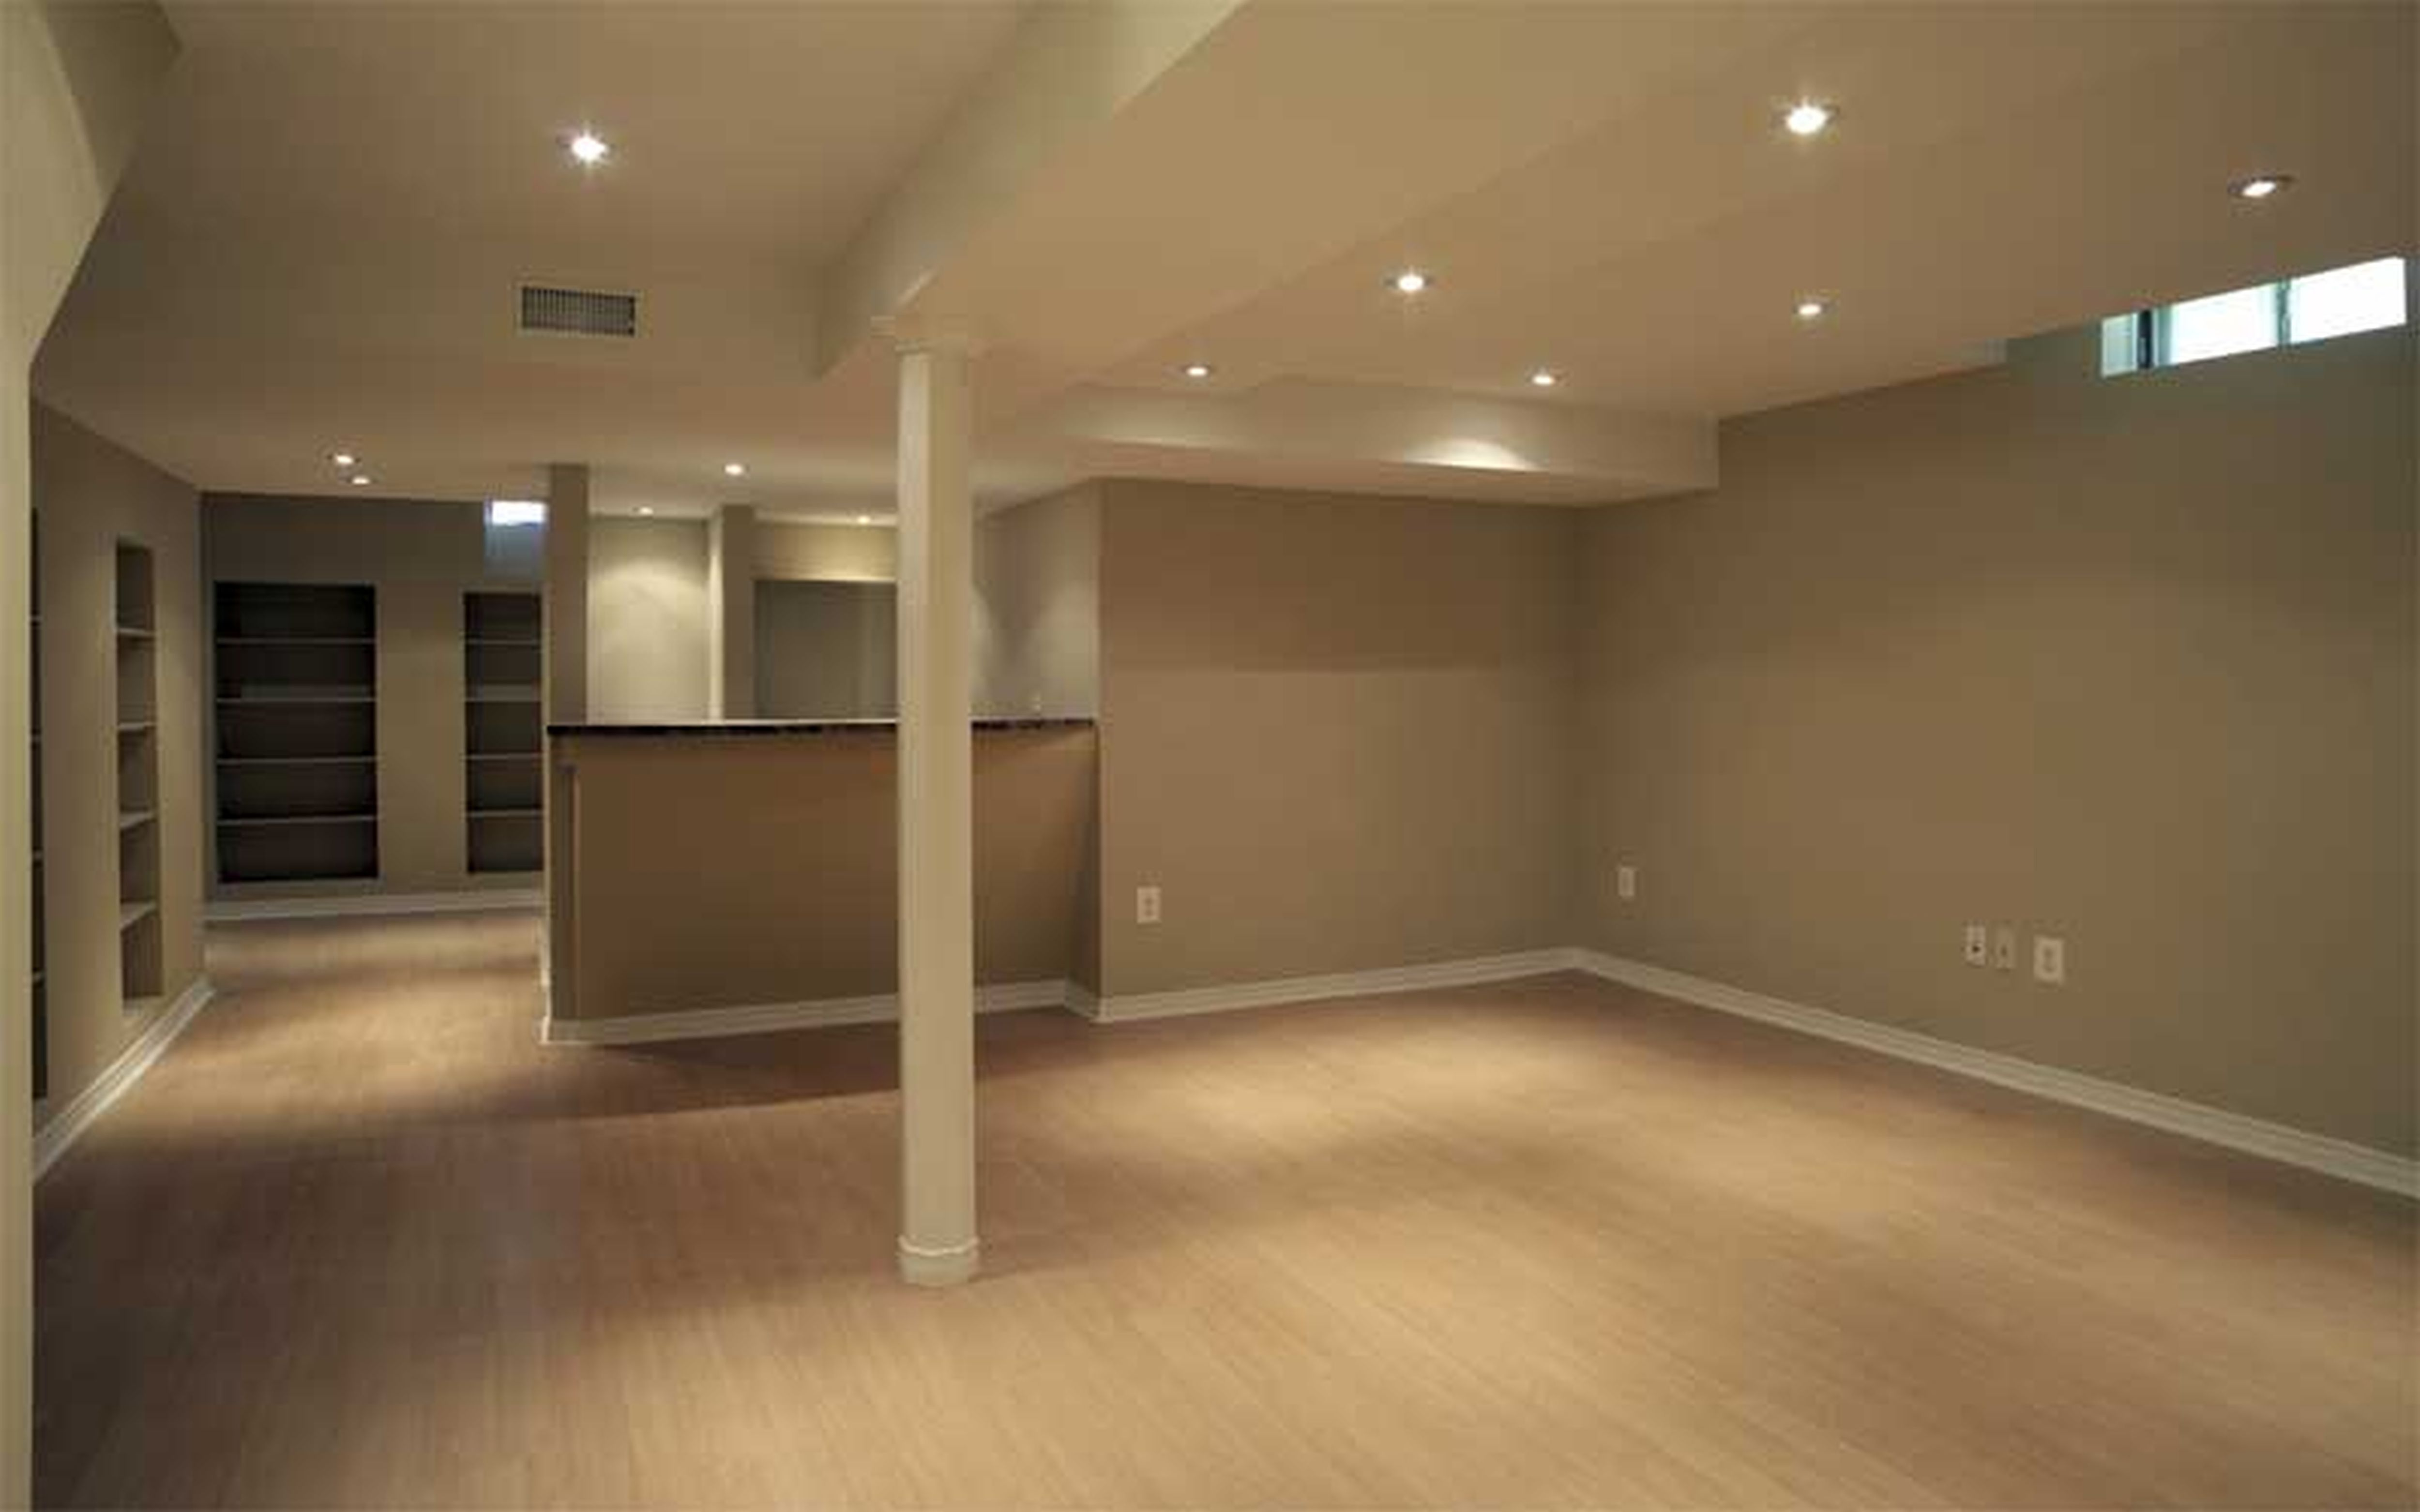 Refinish Basement Ideas Painting Unique Inexpensive Basement Finishing Ideas  Httpwww.designbvild . Inspiration